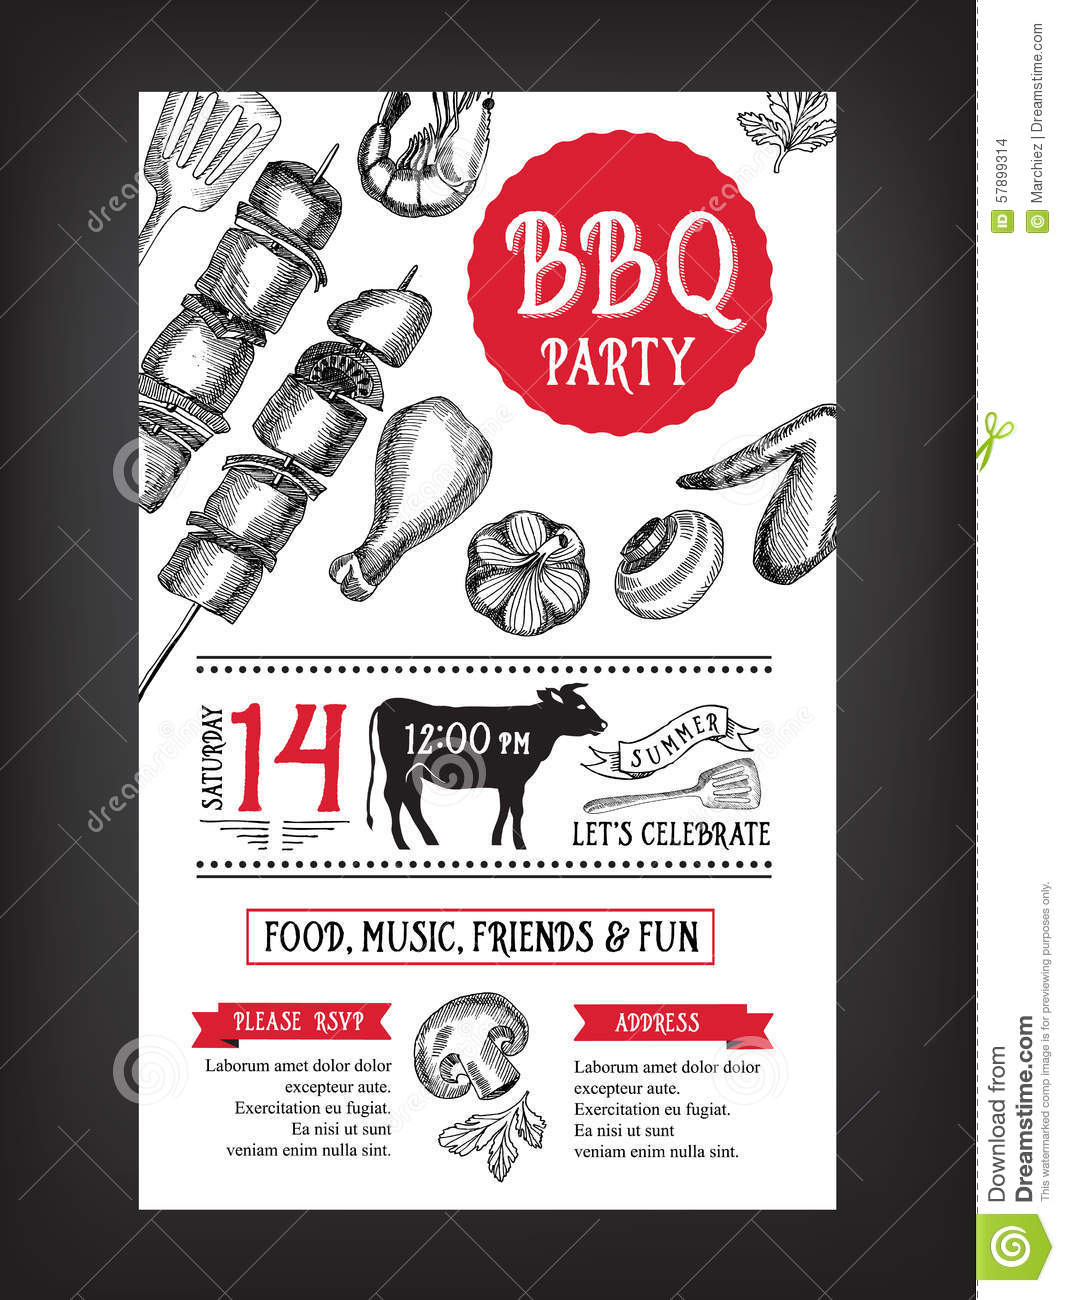 barbecue party invitation bbq template menu design food flyer stock vector illustration of. Black Bedroom Furniture Sets. Home Design Ideas